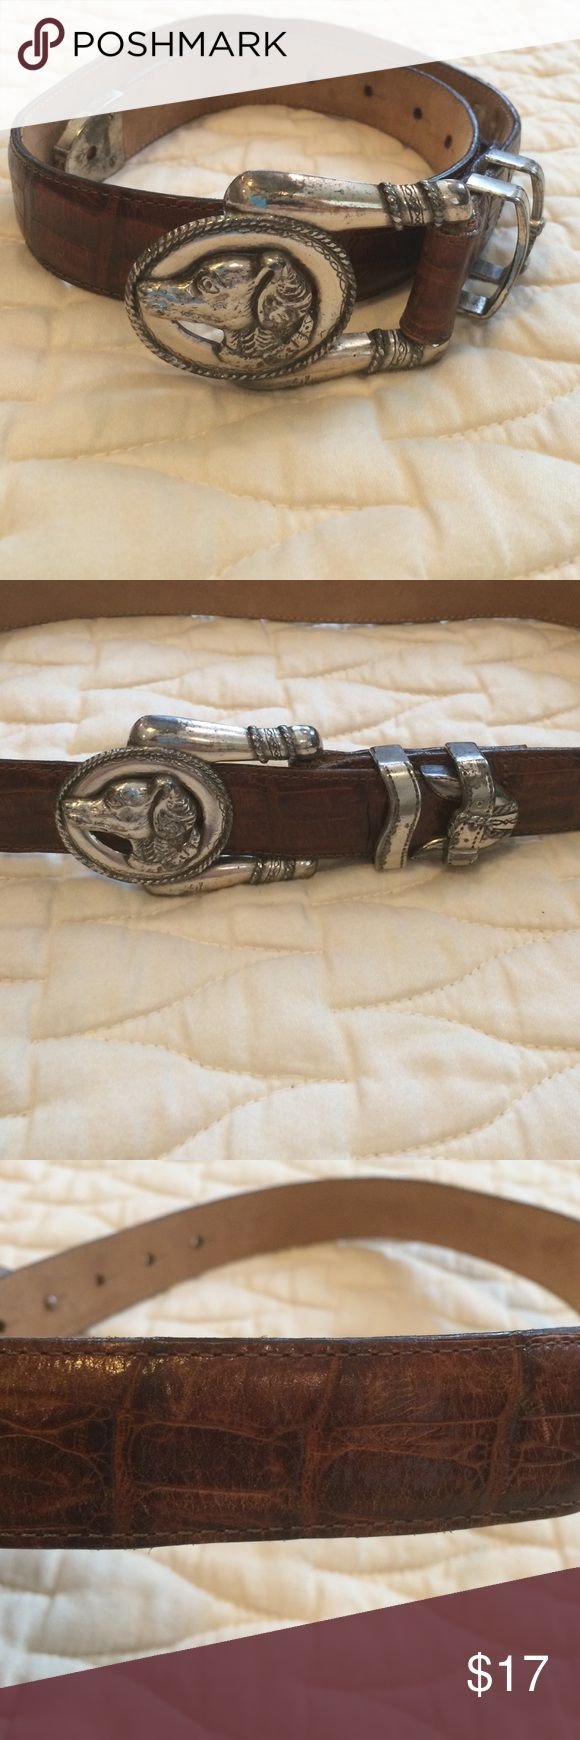 Vintage Brighton Croc Belt This buckle is so fun!  Brown croc embossed Brighton leather belt circa 1996. Silvertone dog buckle and hard wear. The hard wear does show some oxidation but I think it adds to the charm of the belt. The leather is in great shape! Vintage Accessories Belts